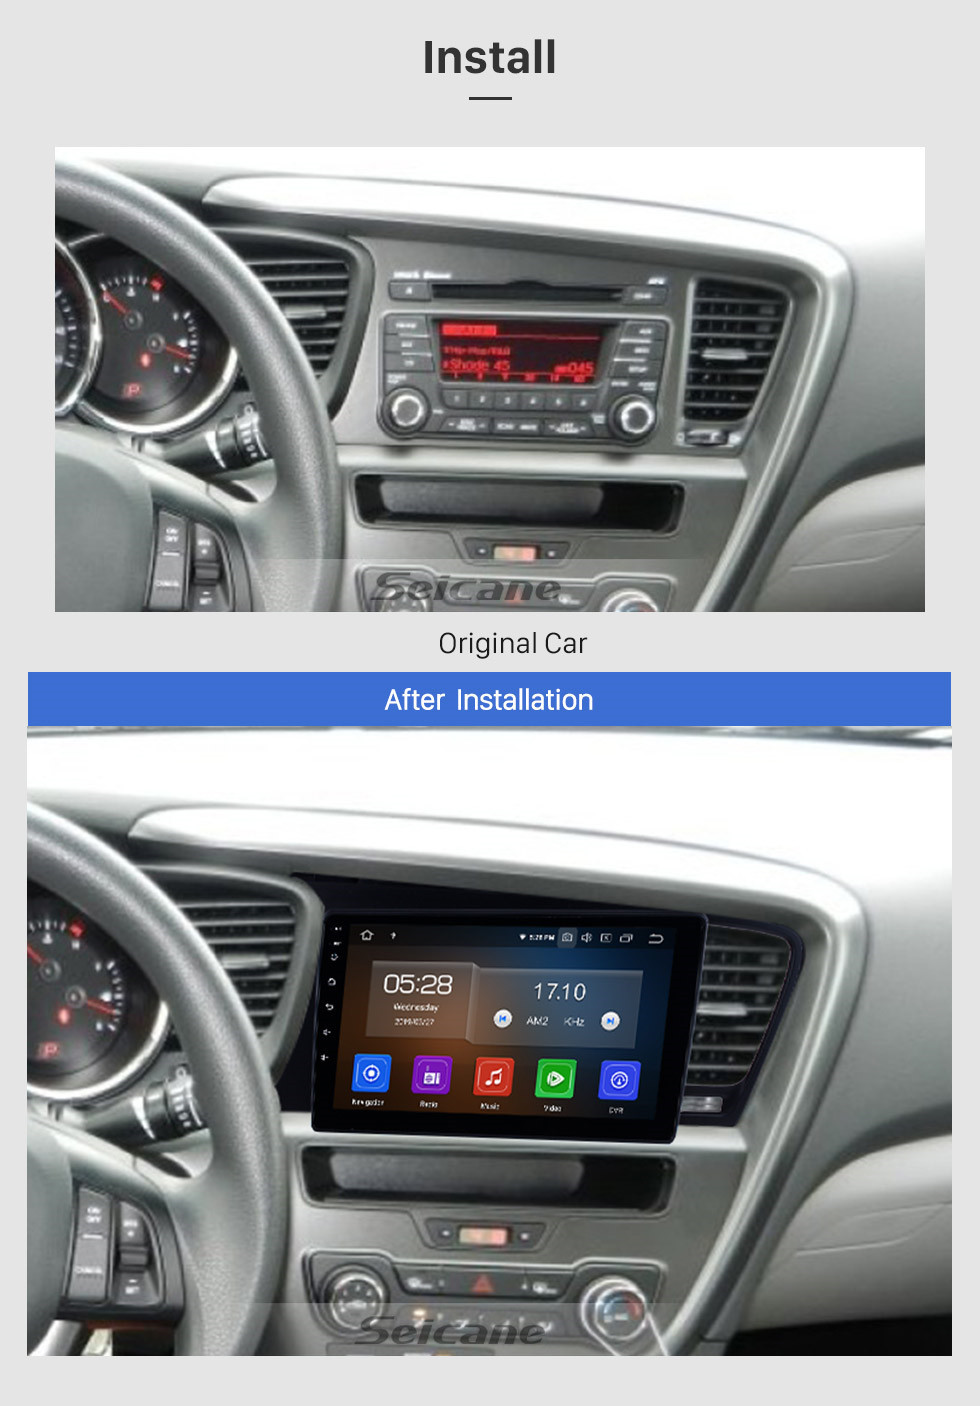 Seicane 9 inch HD Touchscreen Android 10.0 Radio for 2011 2012 2013 2014 Kia k5 LHD with GPS Navigation Bluetooth USB Music 3G WIFI OBDII Mirror Link Steering Wheel Control